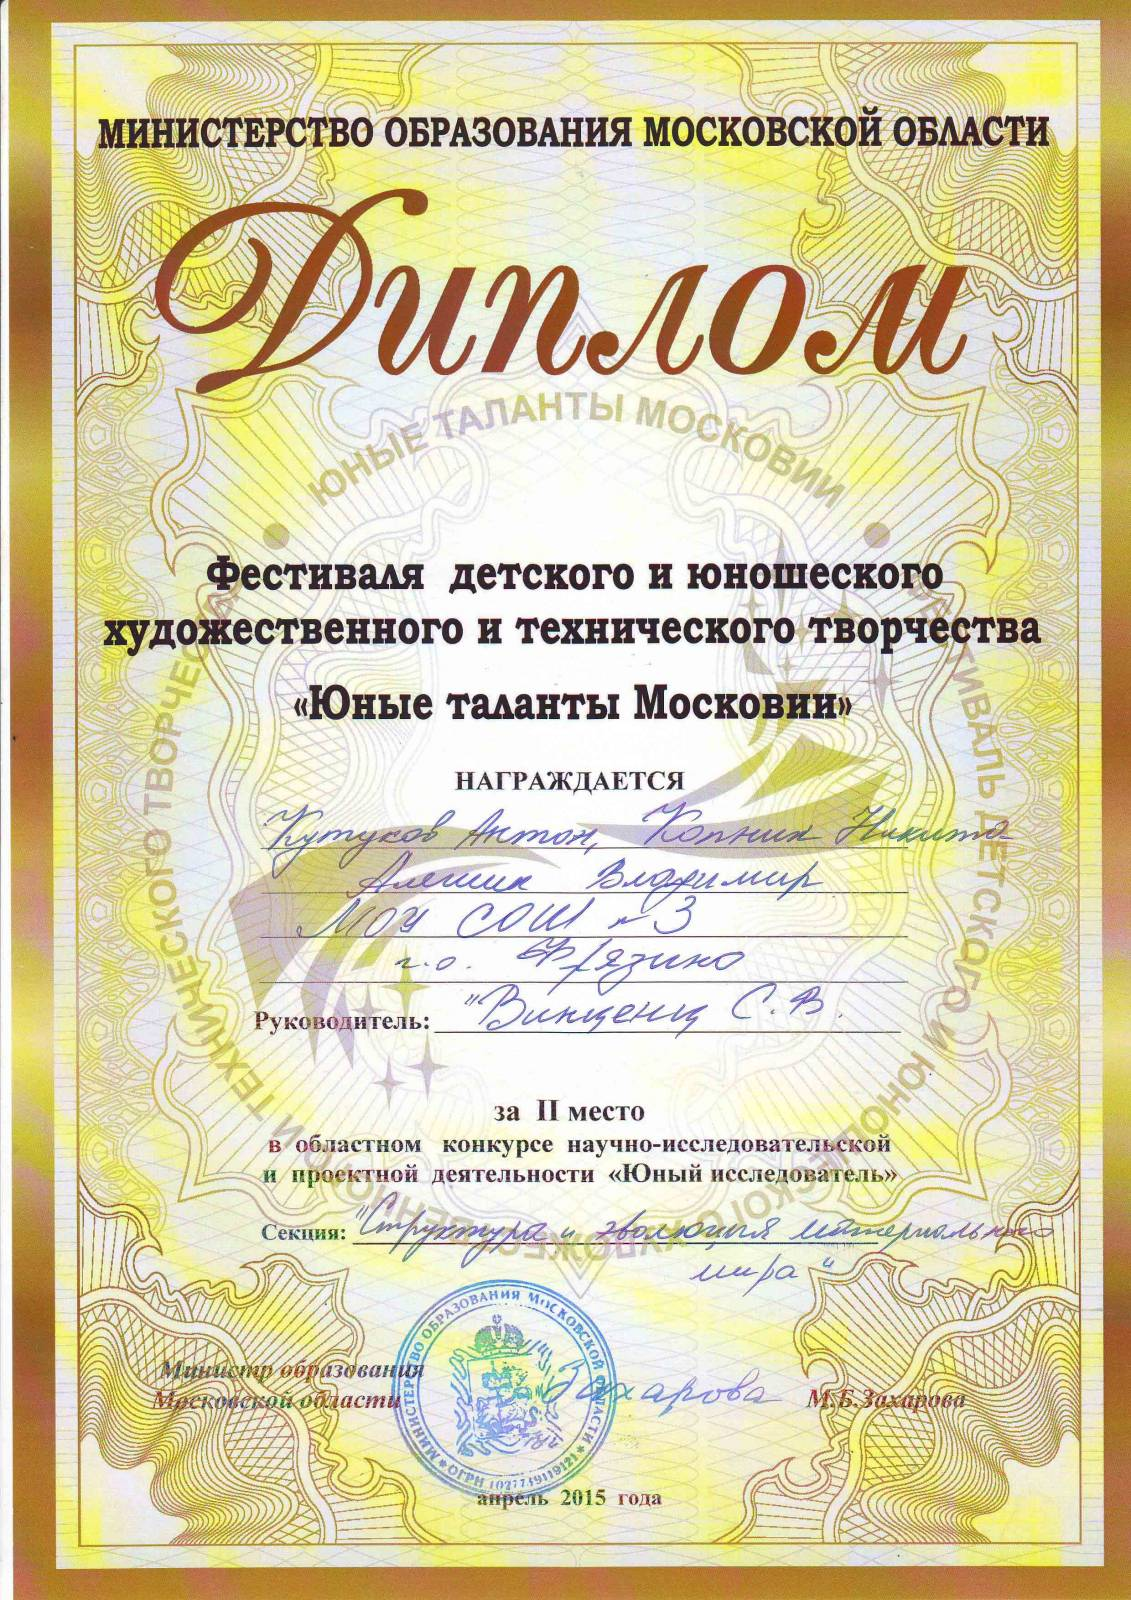 http://volley-school3.ucoz.ru/_ph/15/302374887.jpg